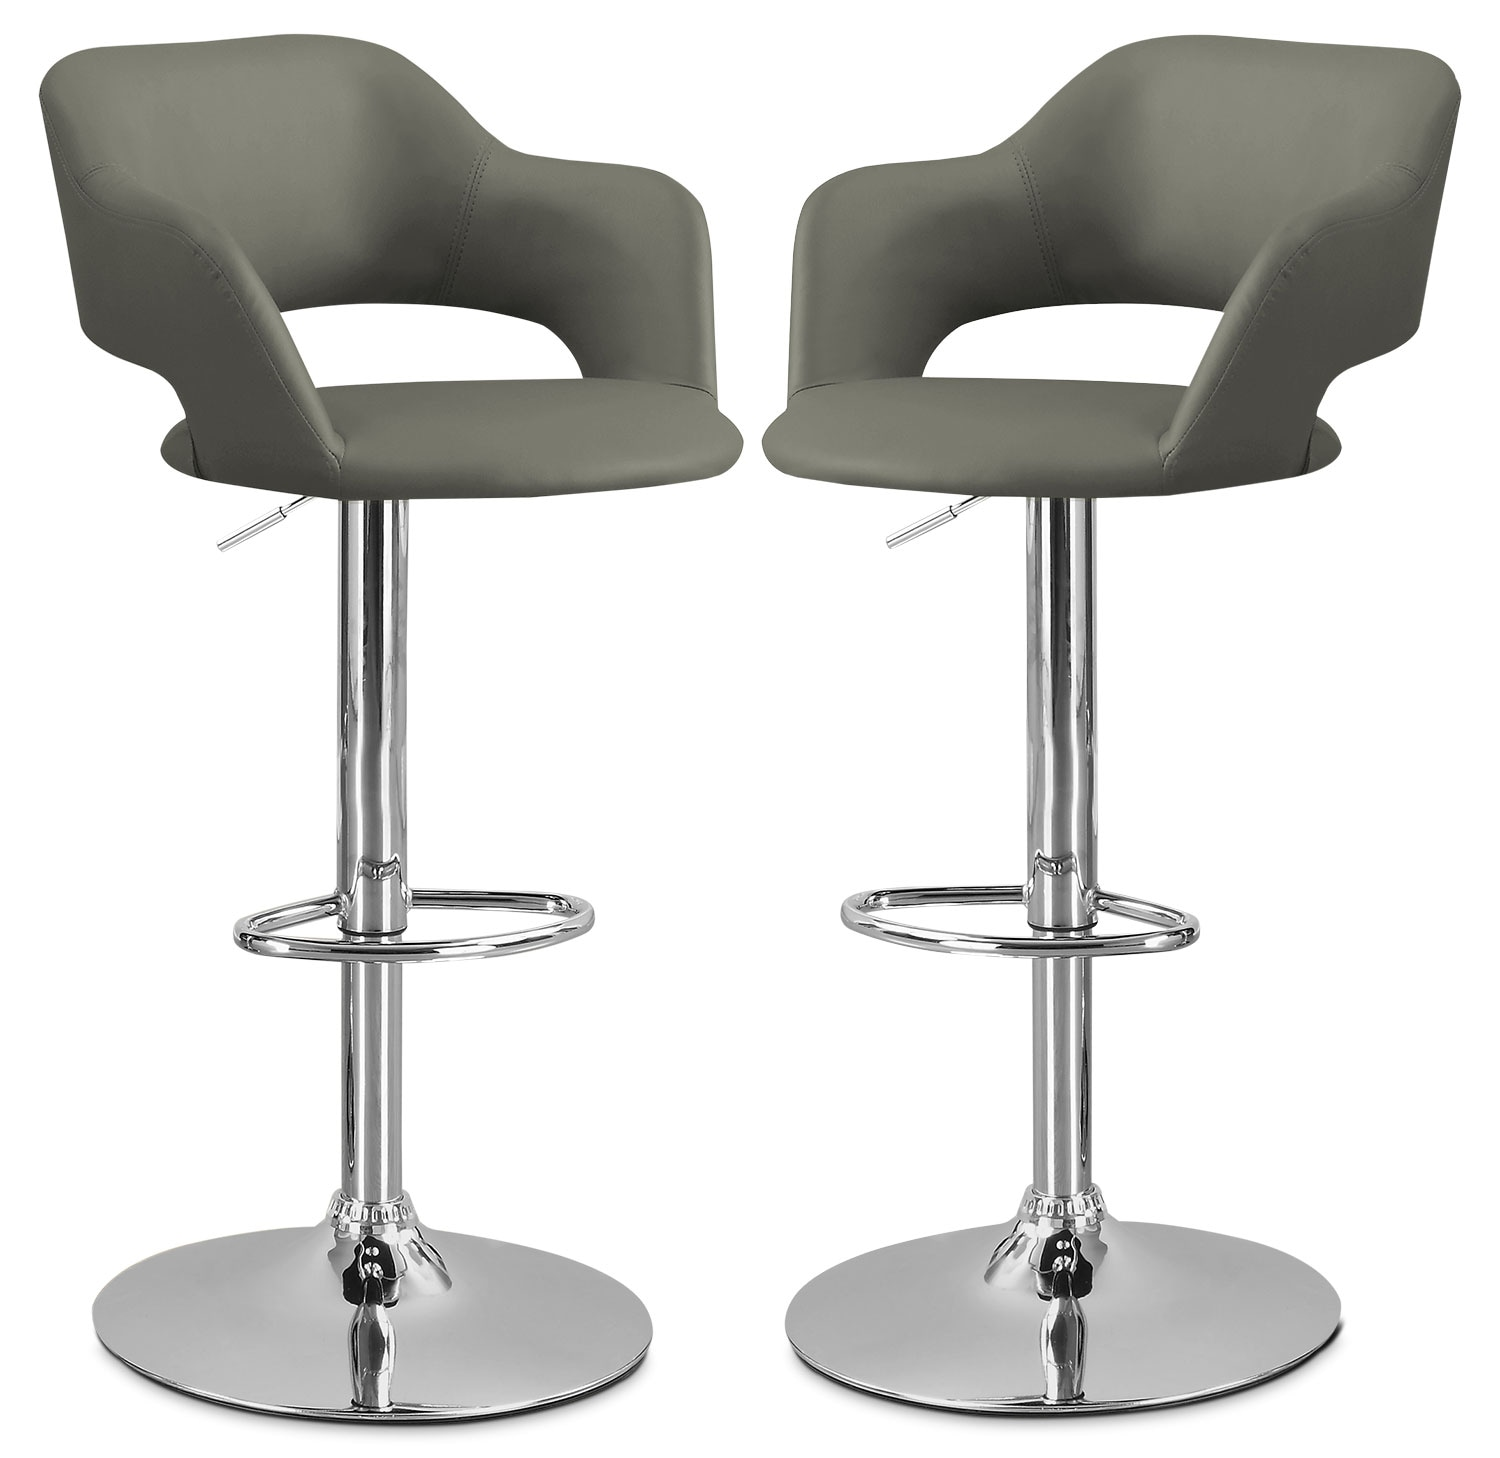 Monarch Hydraulic Contemporary Bar Stool, Set of 2 – Grey